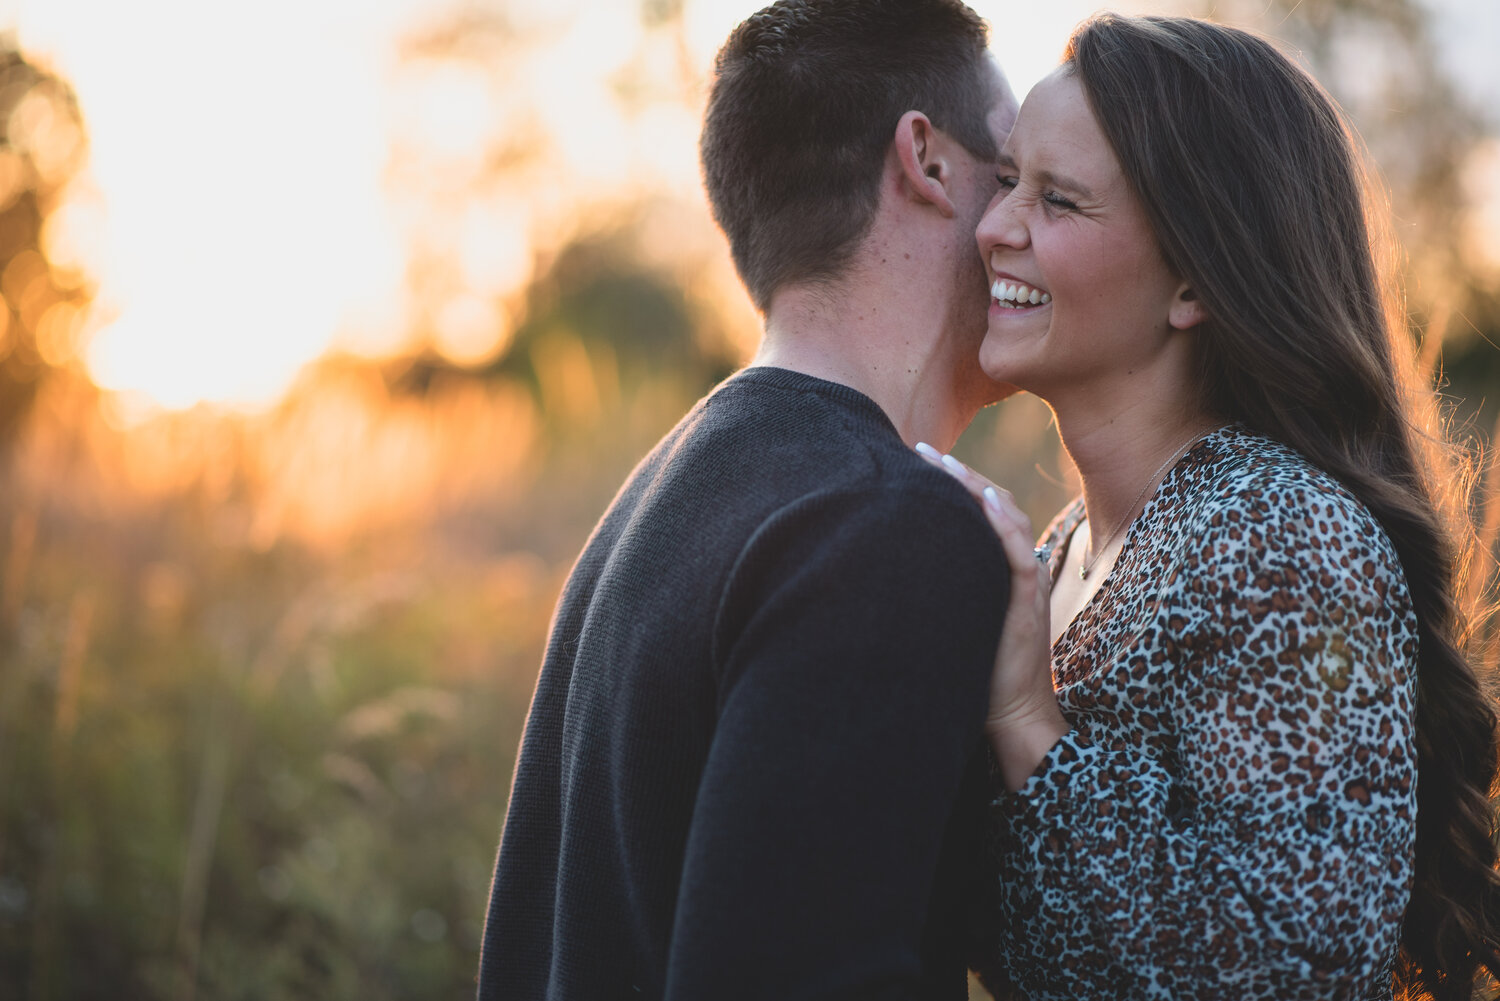 Taylor and Jason - Engagement Photography Services by Devon Crowell